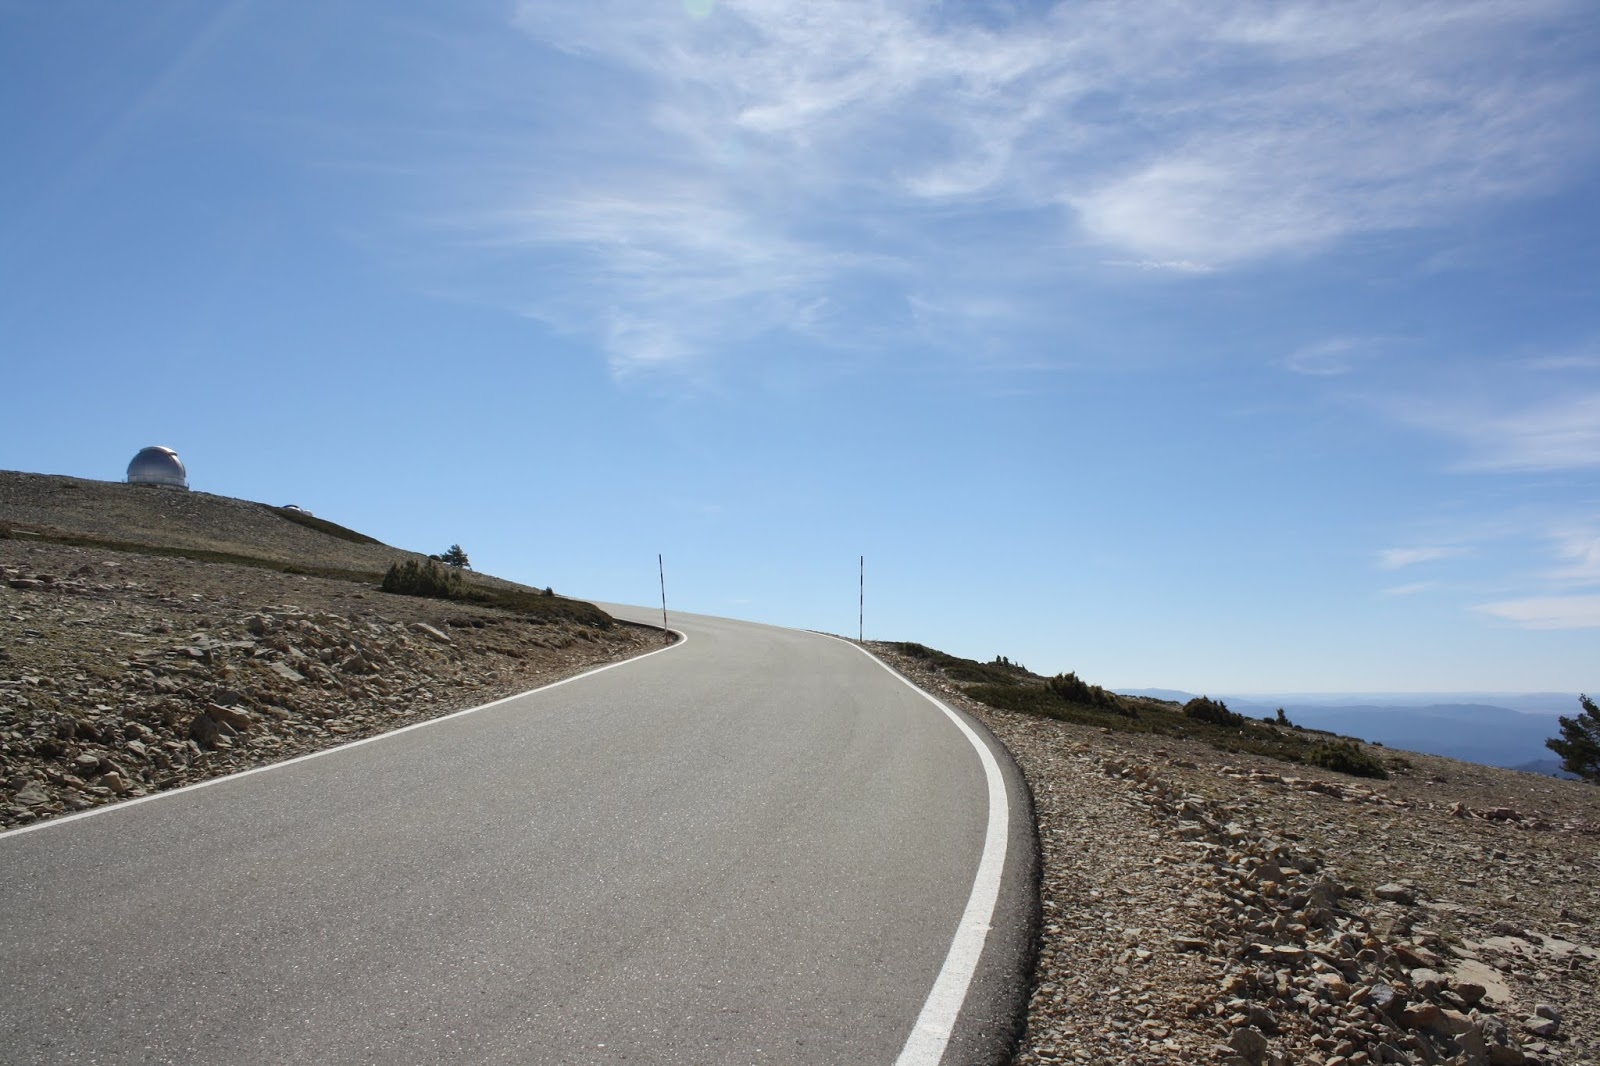 Final metres of road to Javalambre Astrophysical Observatory, Teruel